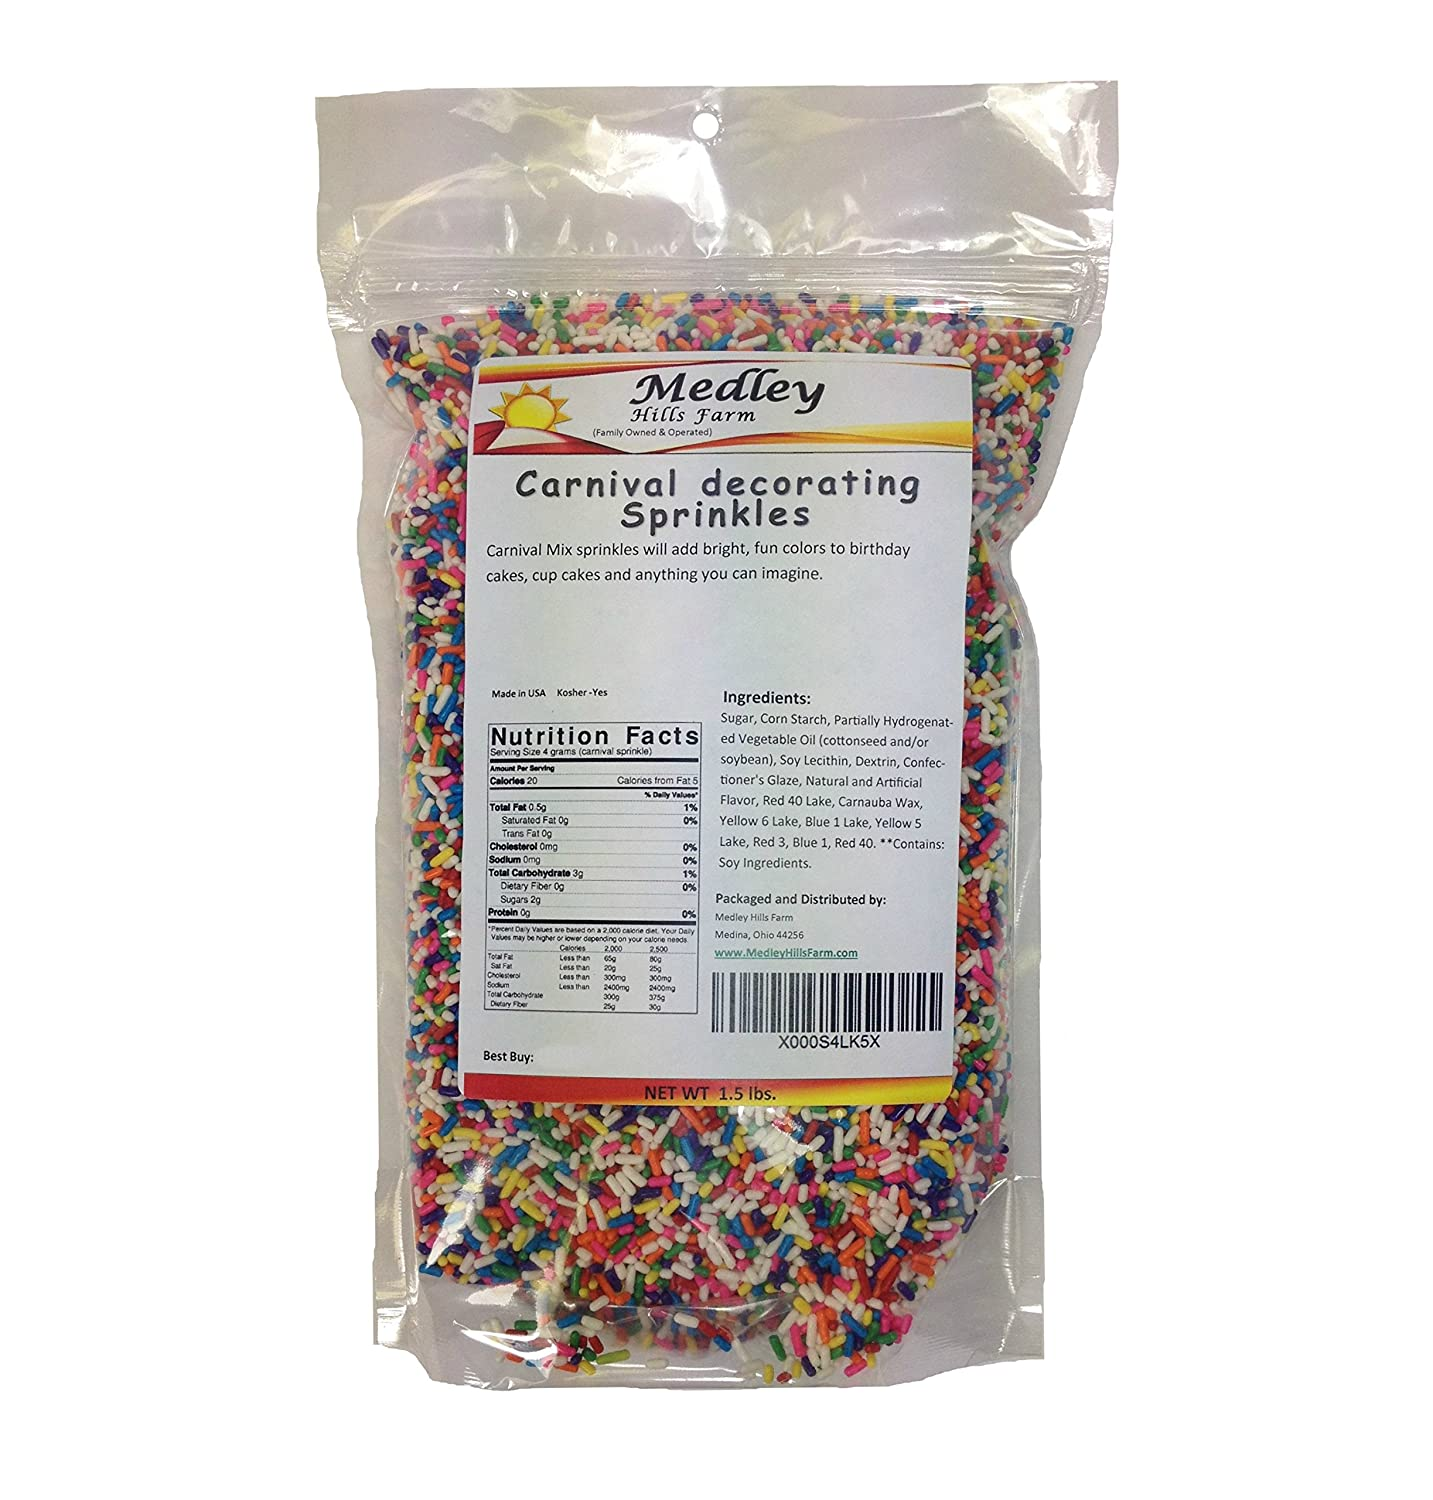 Carnival decorating Sprinkles Mix 1 5 lbs , by Medley Hills Farm